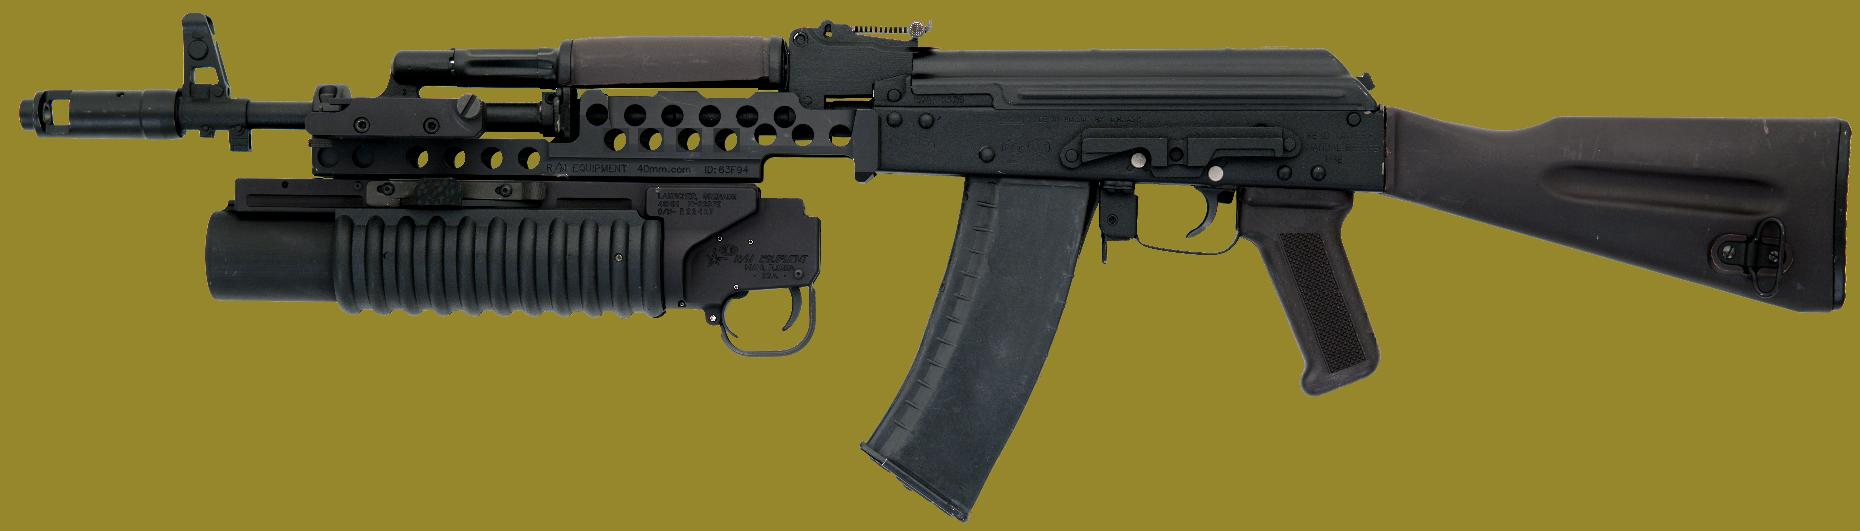 M203 40mm grenade launcher EGLM on the AK rifle.